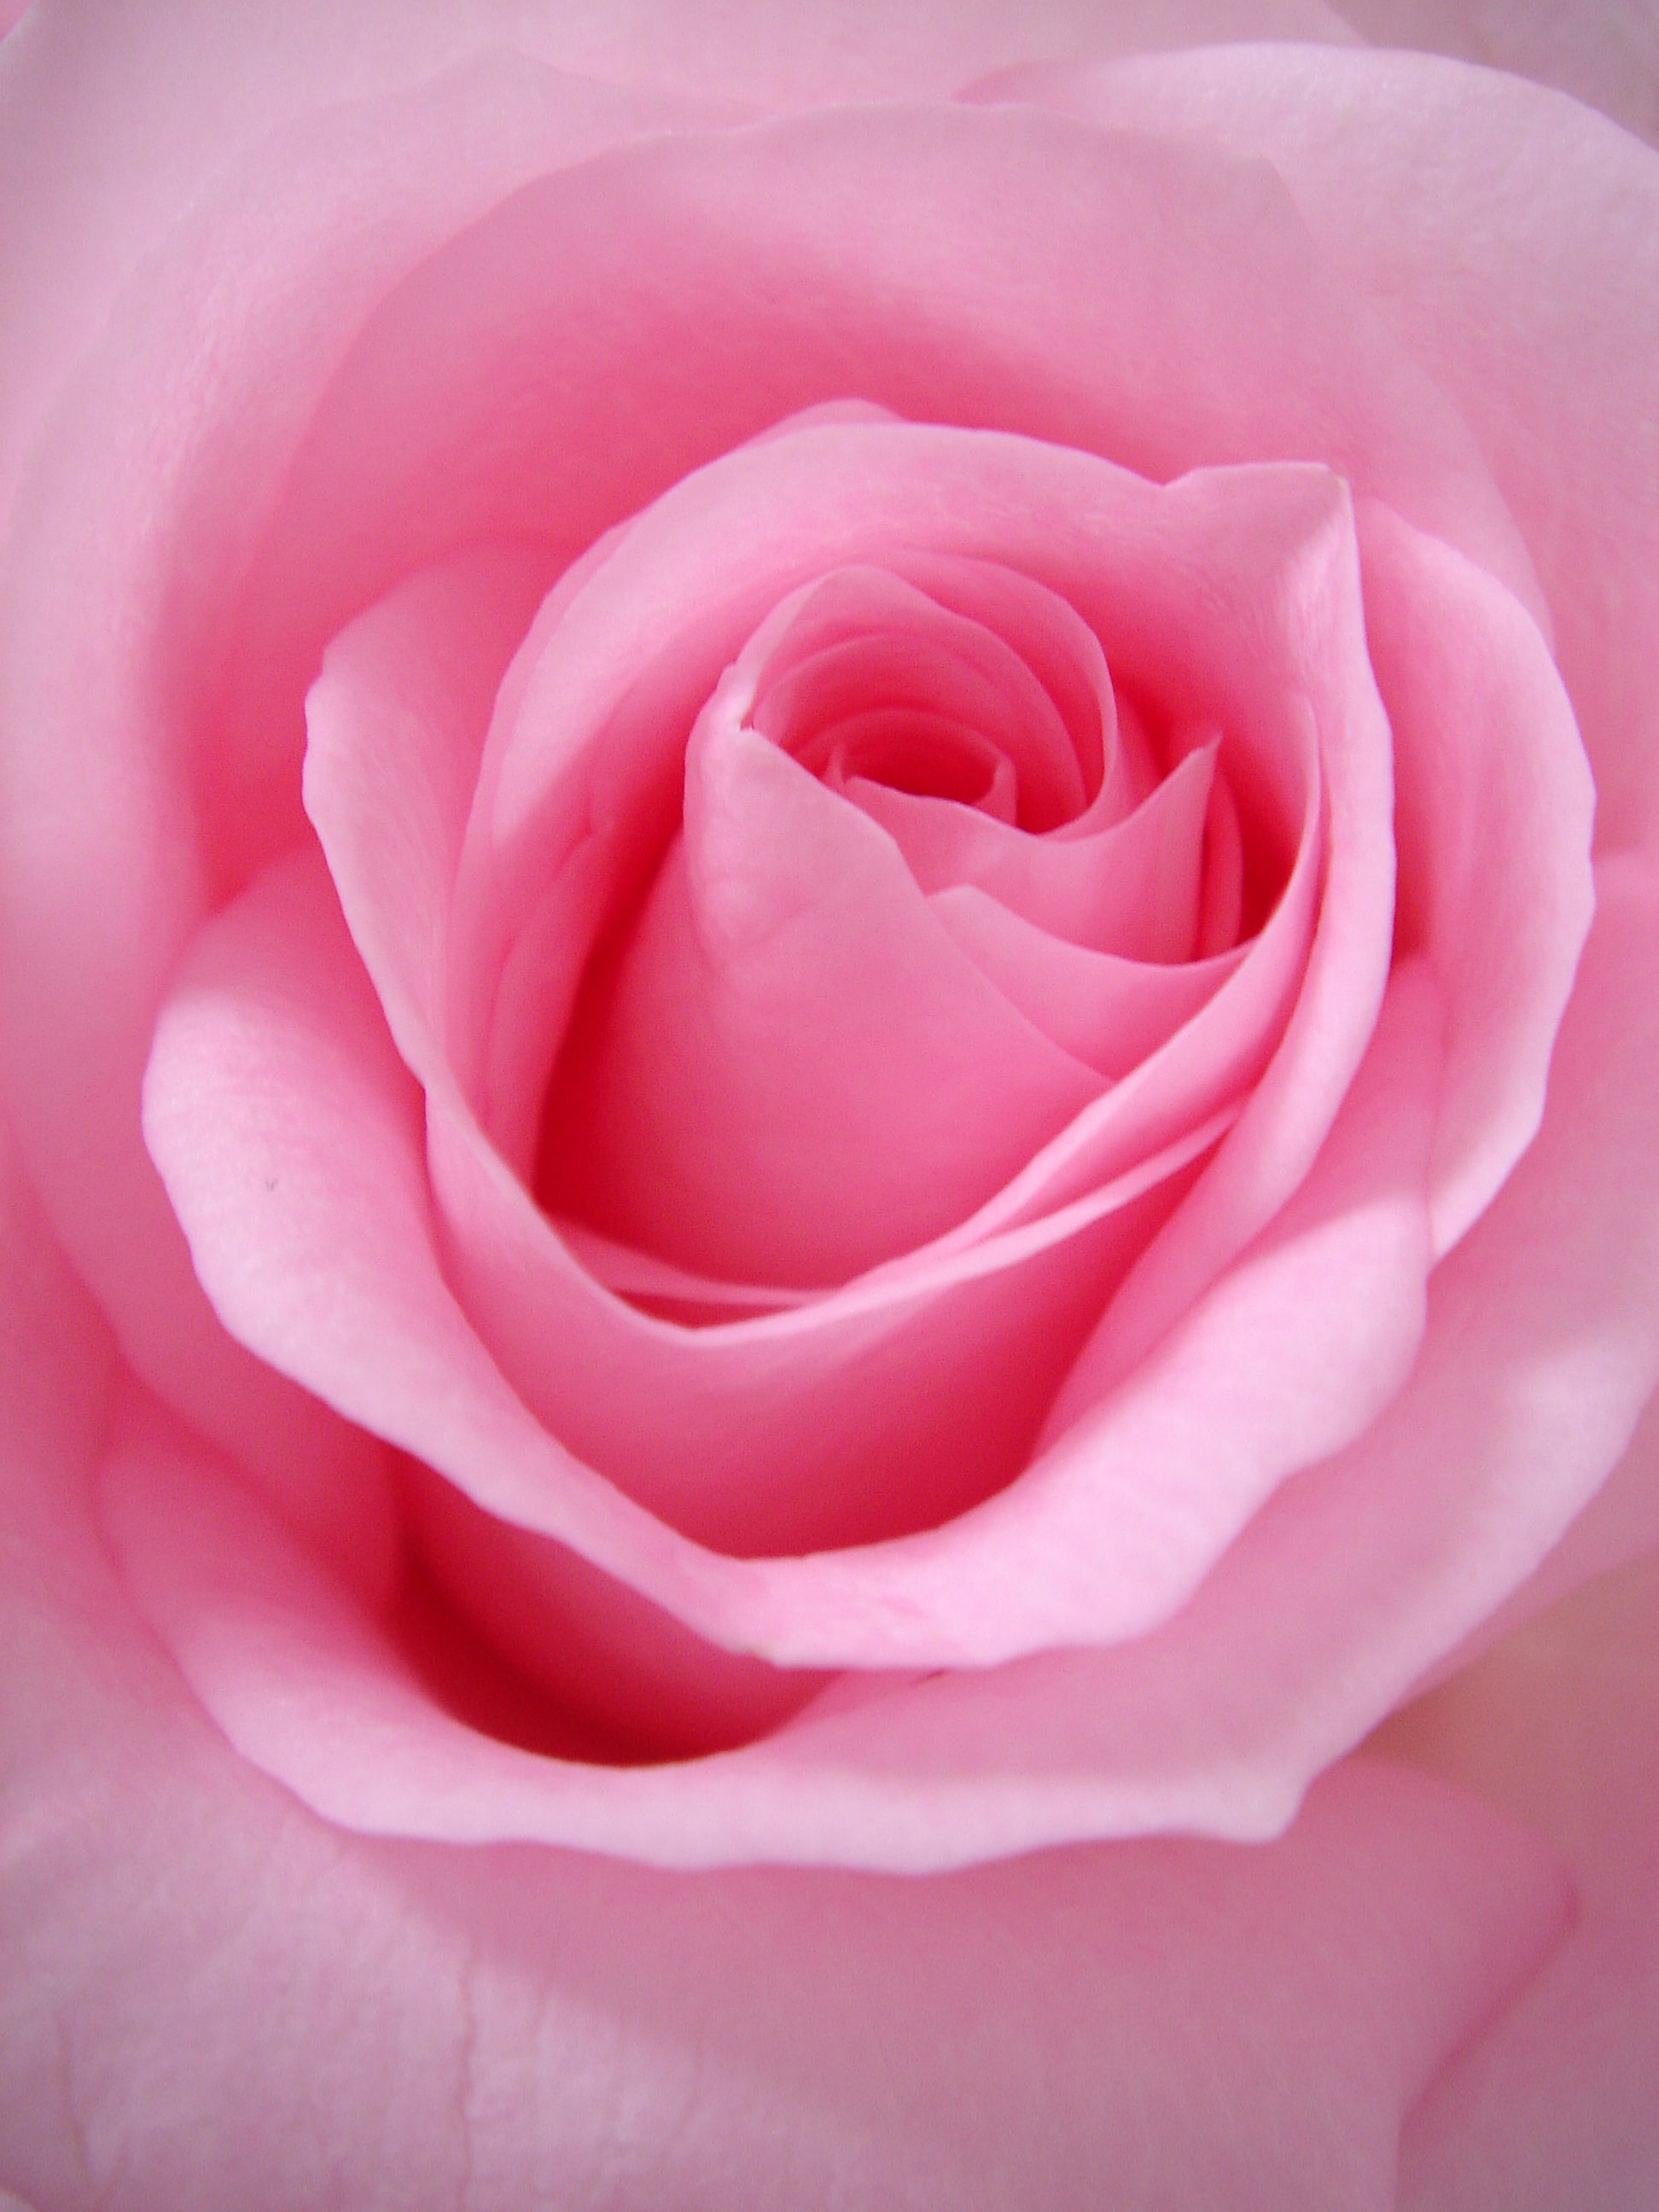 close up photo of pink rose